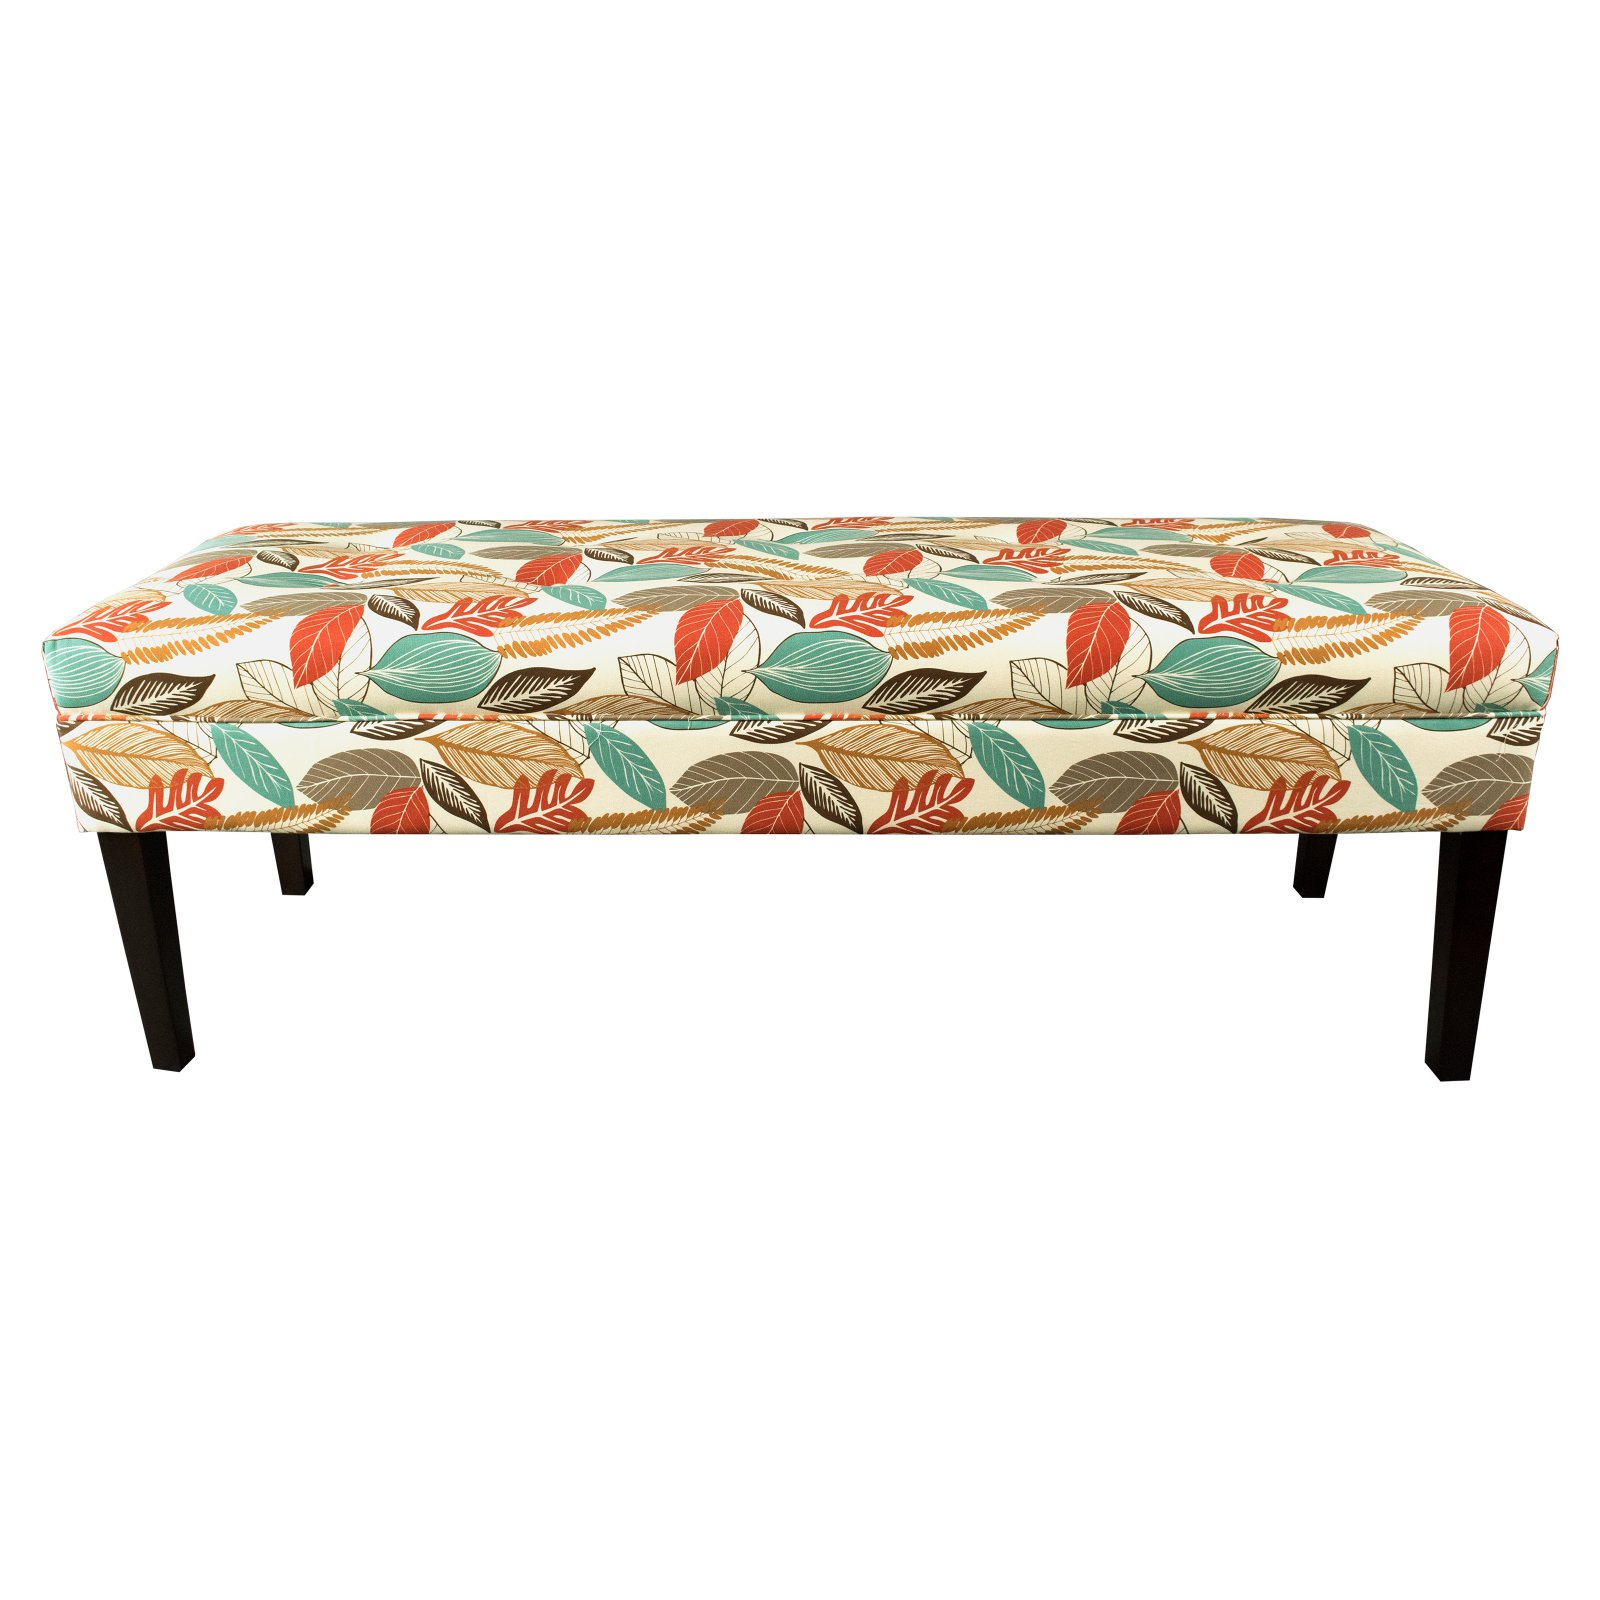 MJL Designs Kaya Floral Bench